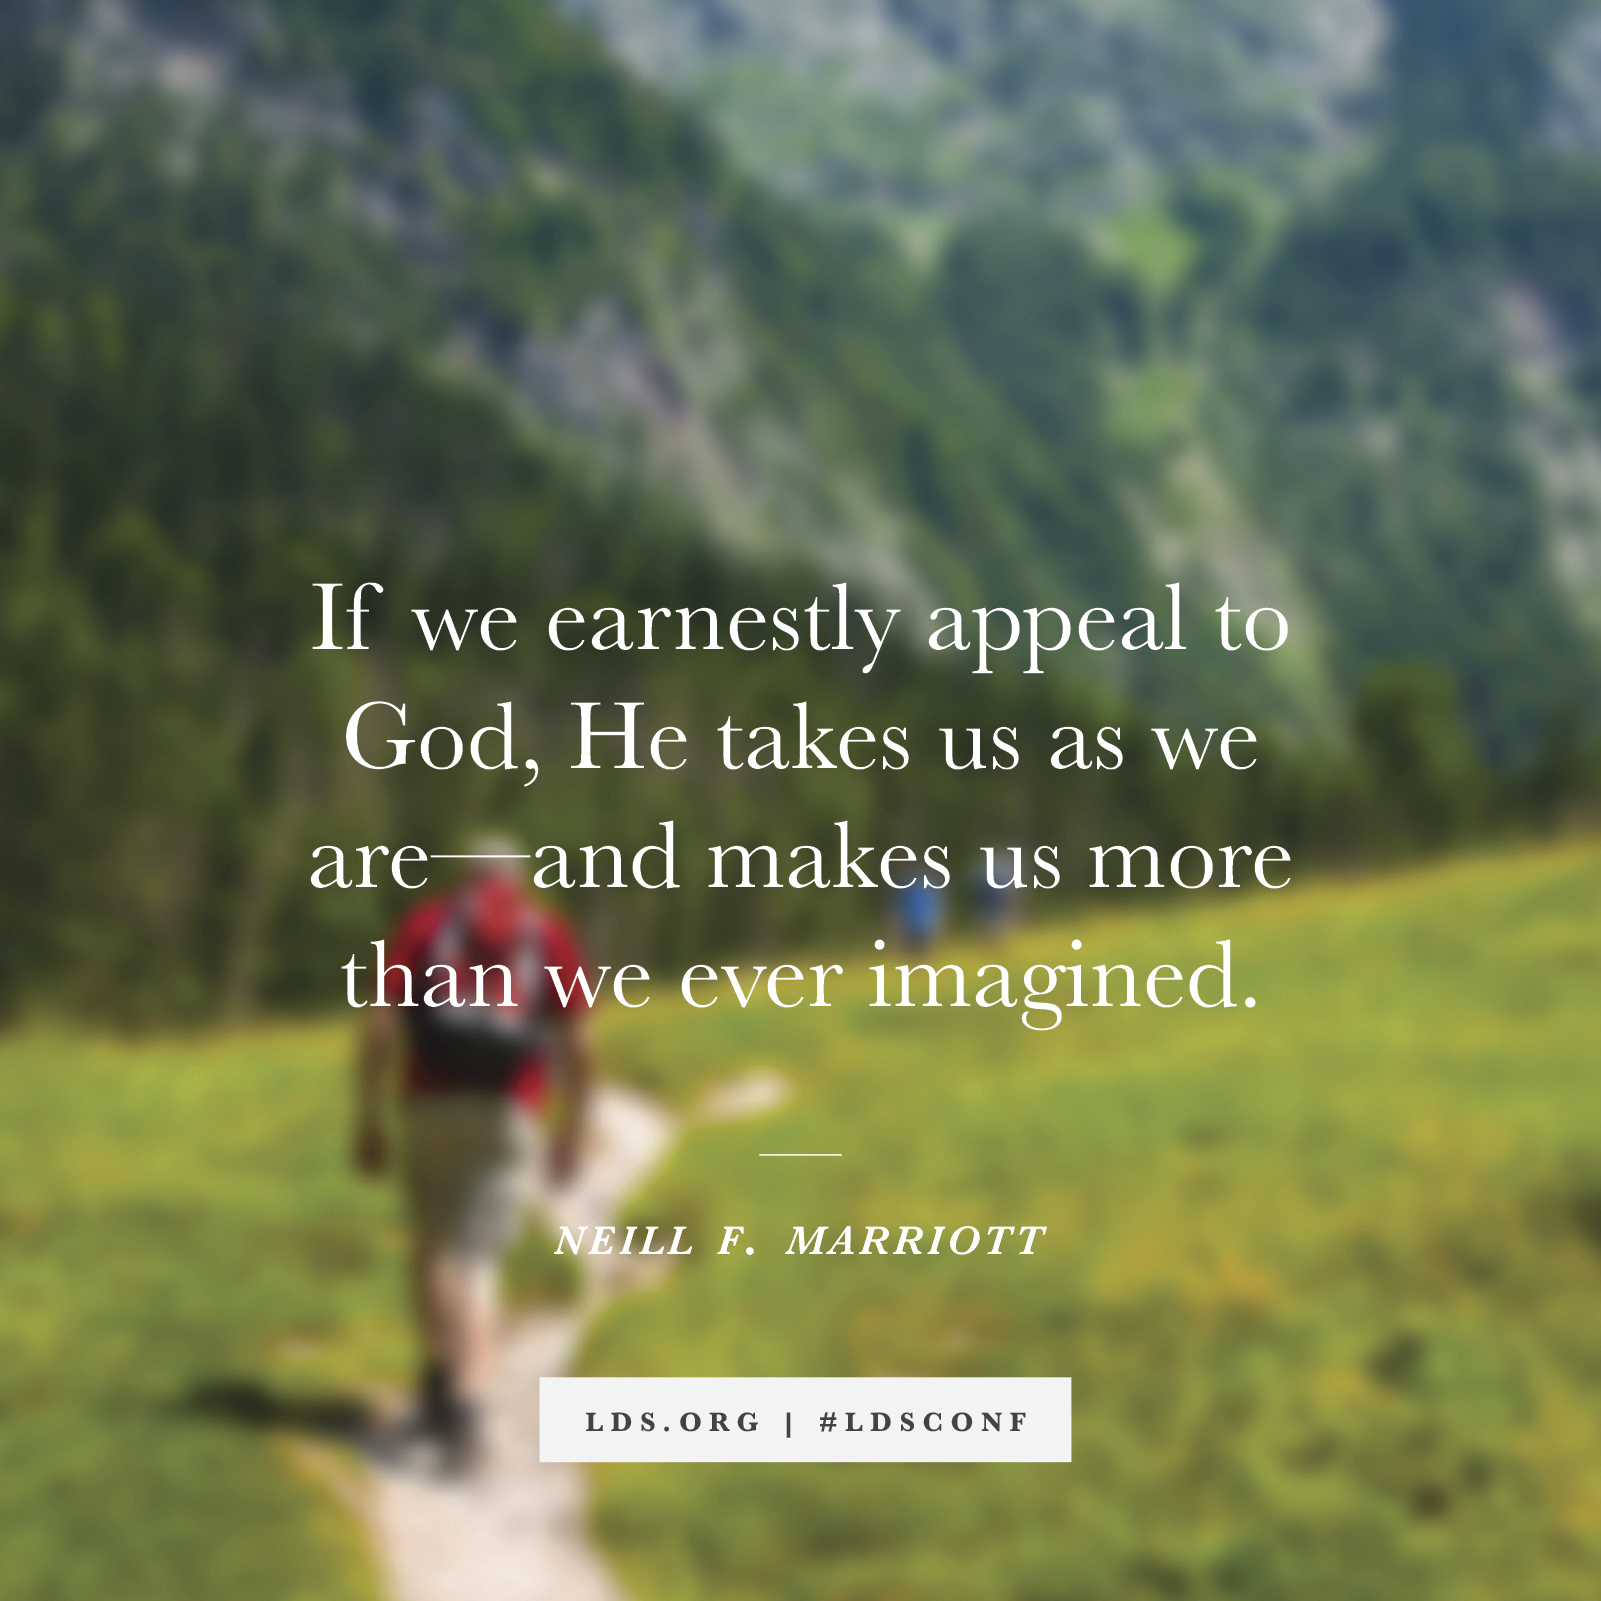 """""""If we earnestly appeal to God, He takes us as we are—and makes us more than we ever imagined."""" —Neill F. Marriott, """"Yielding Our Hearts to God"""""""